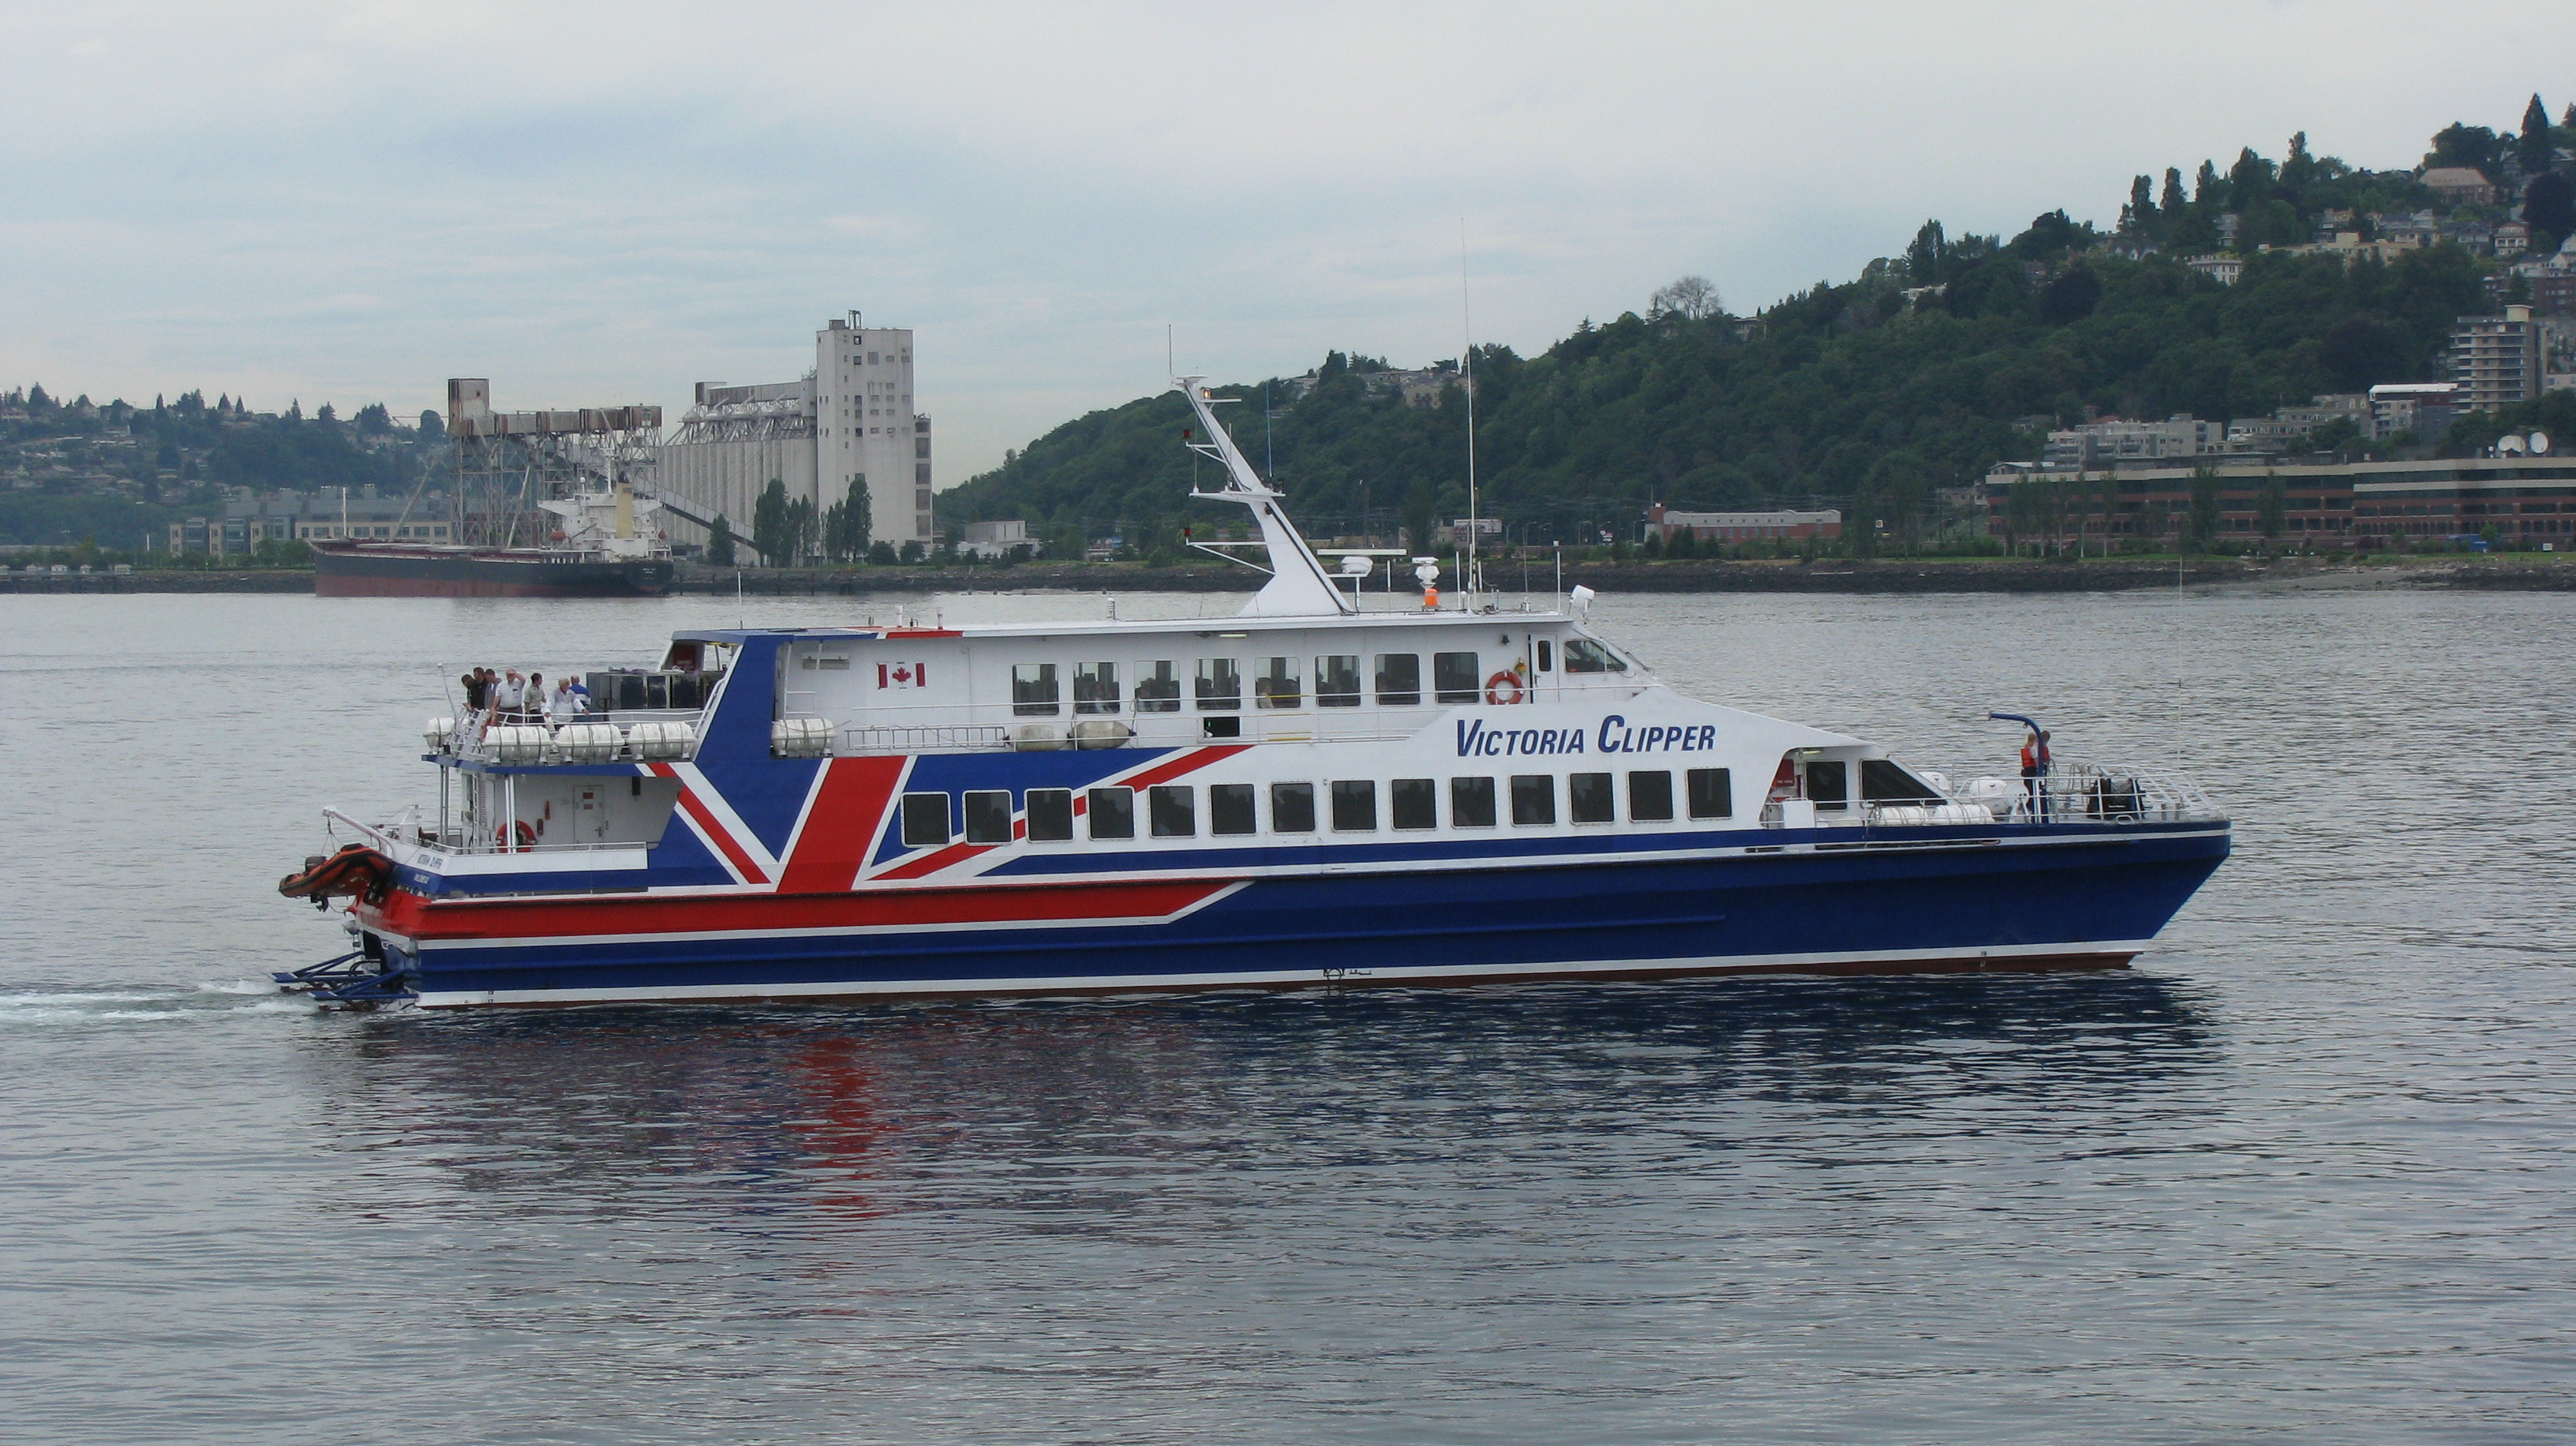 Victoria Clipper 1 in Seattle.JPG